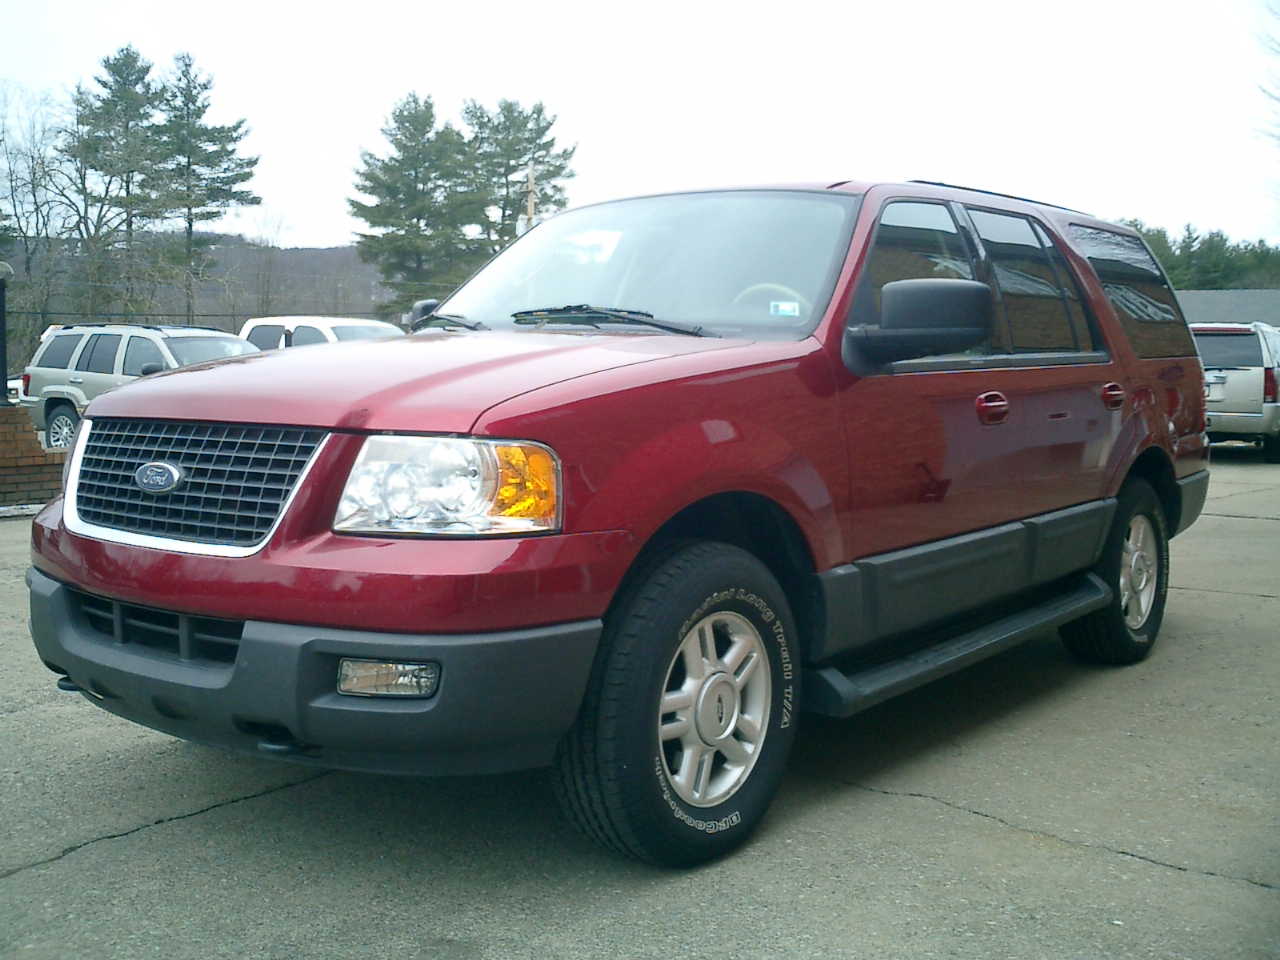 Ford Expedition 2004 foto - 1